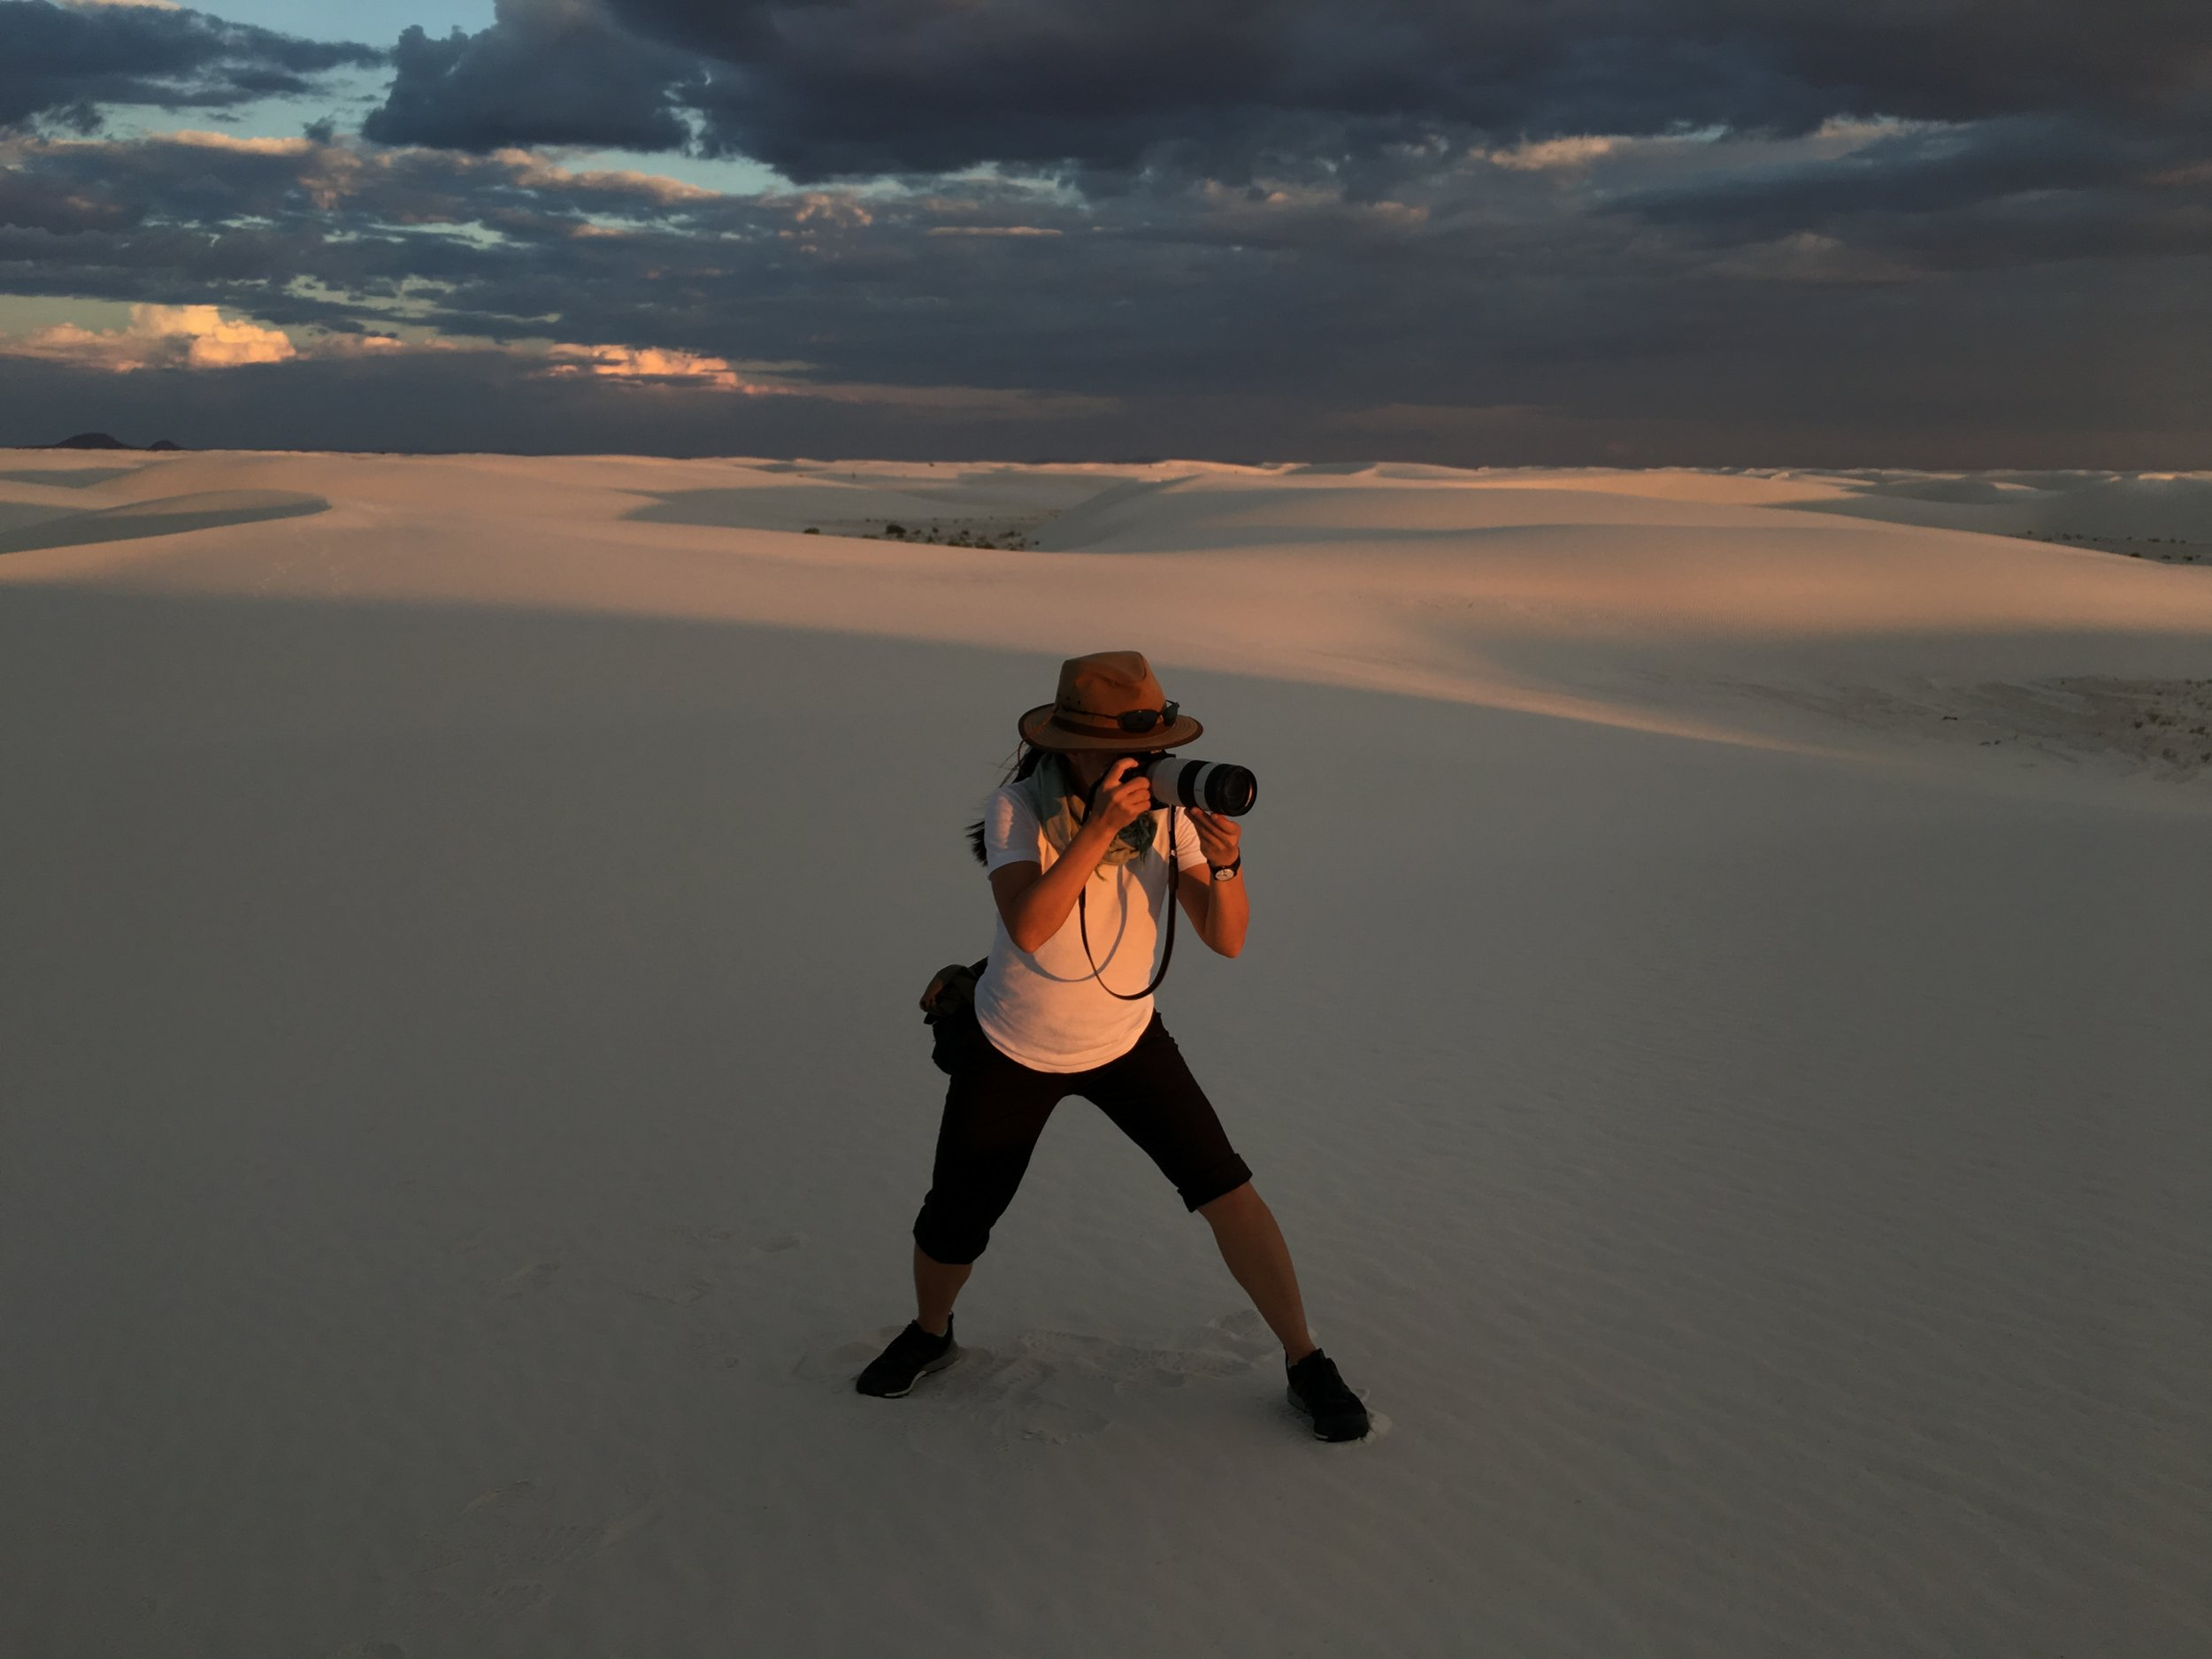 Chi Yin photographing in New Mexico. Photo credit: Gabriel Ellison Scowcroft